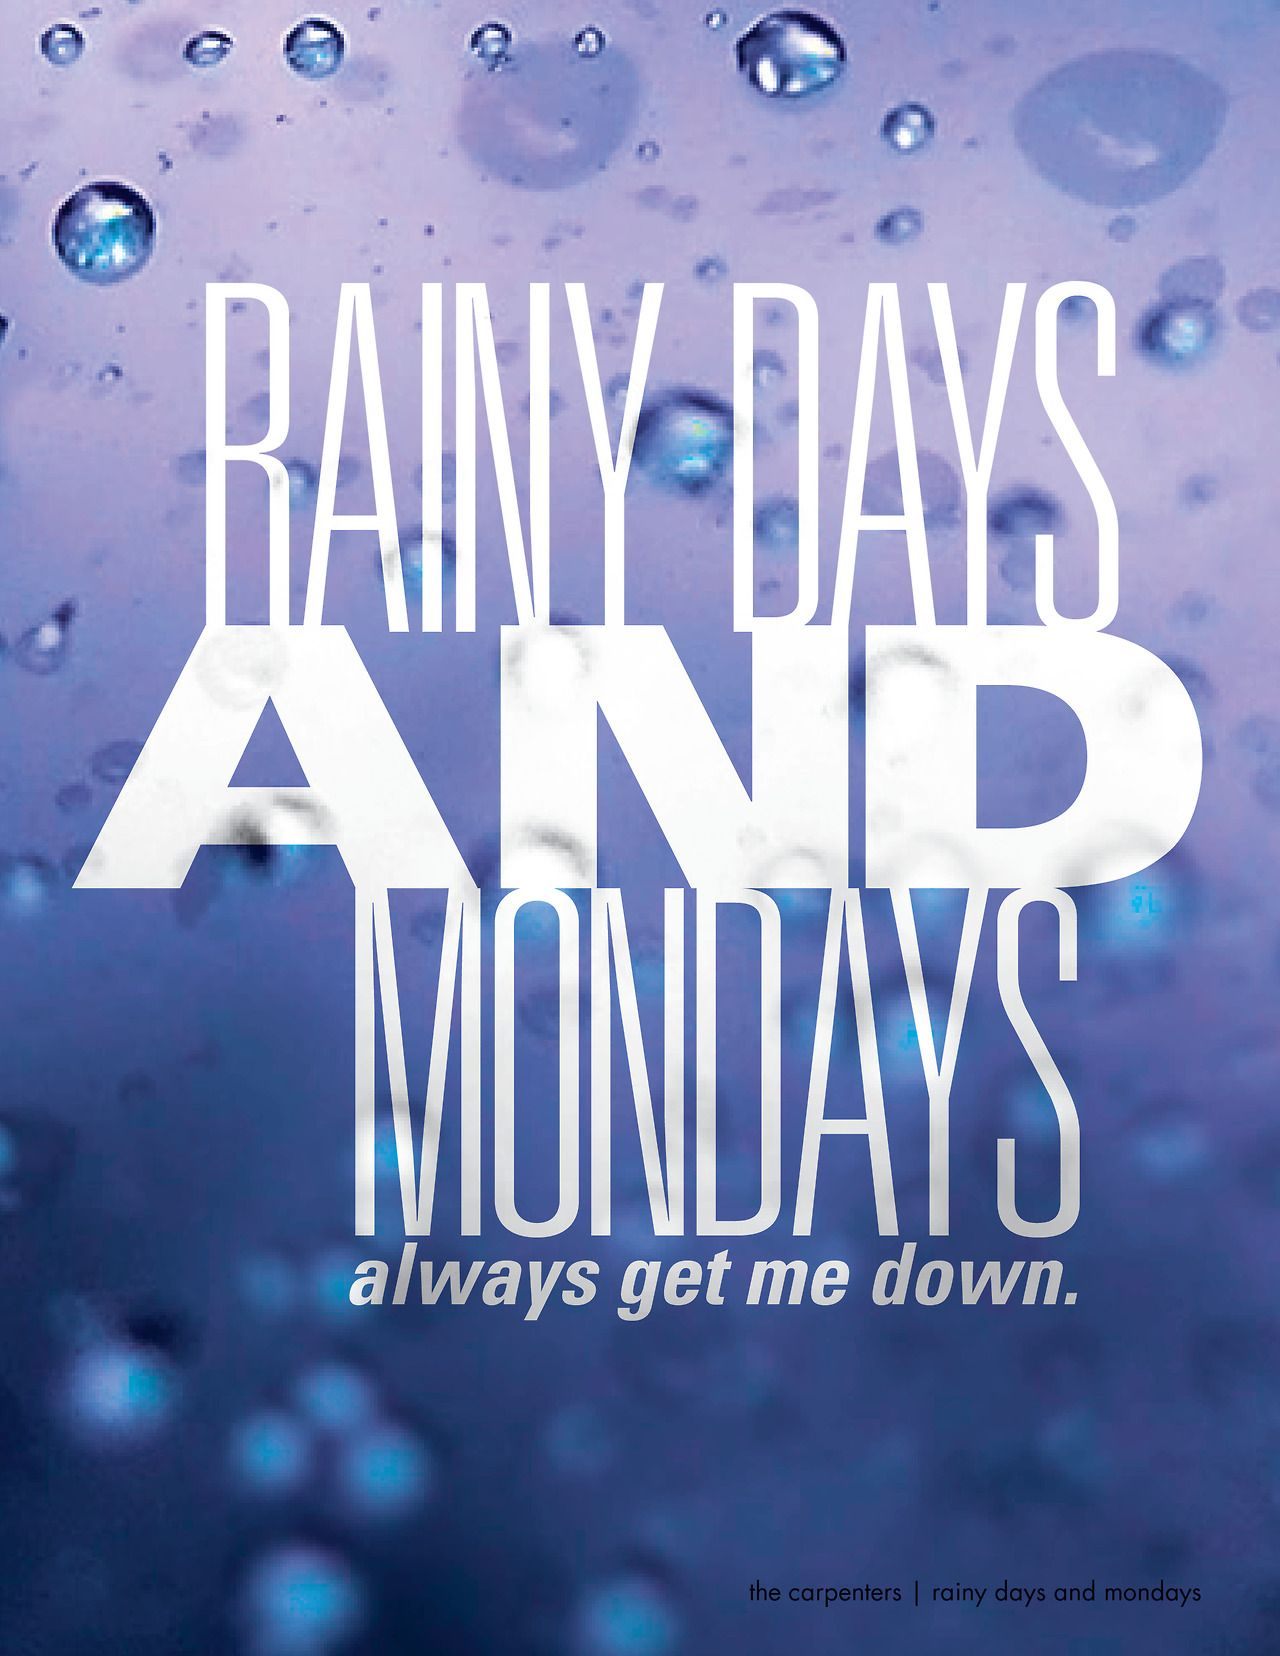 The Carpenters - Rainy Days and Mondays. Love this song, did a very special duet with this song once. ;)